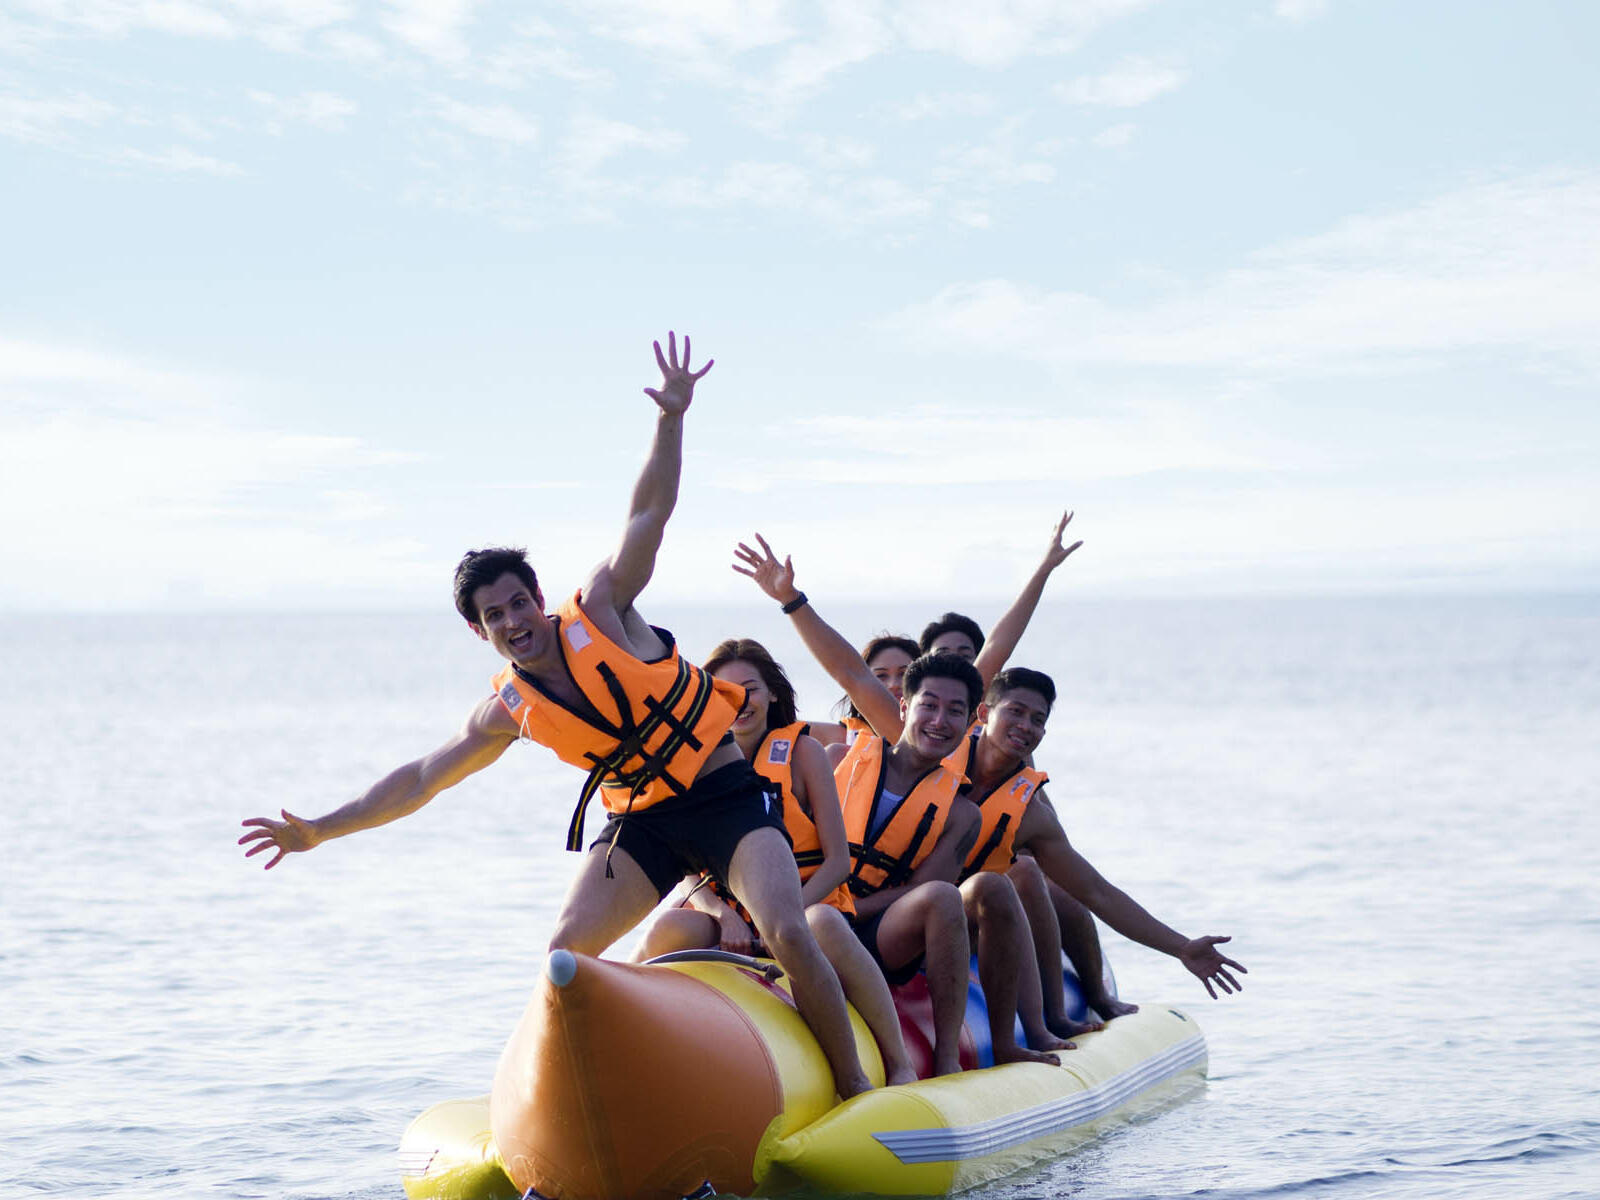 Few people on the banana boat ride